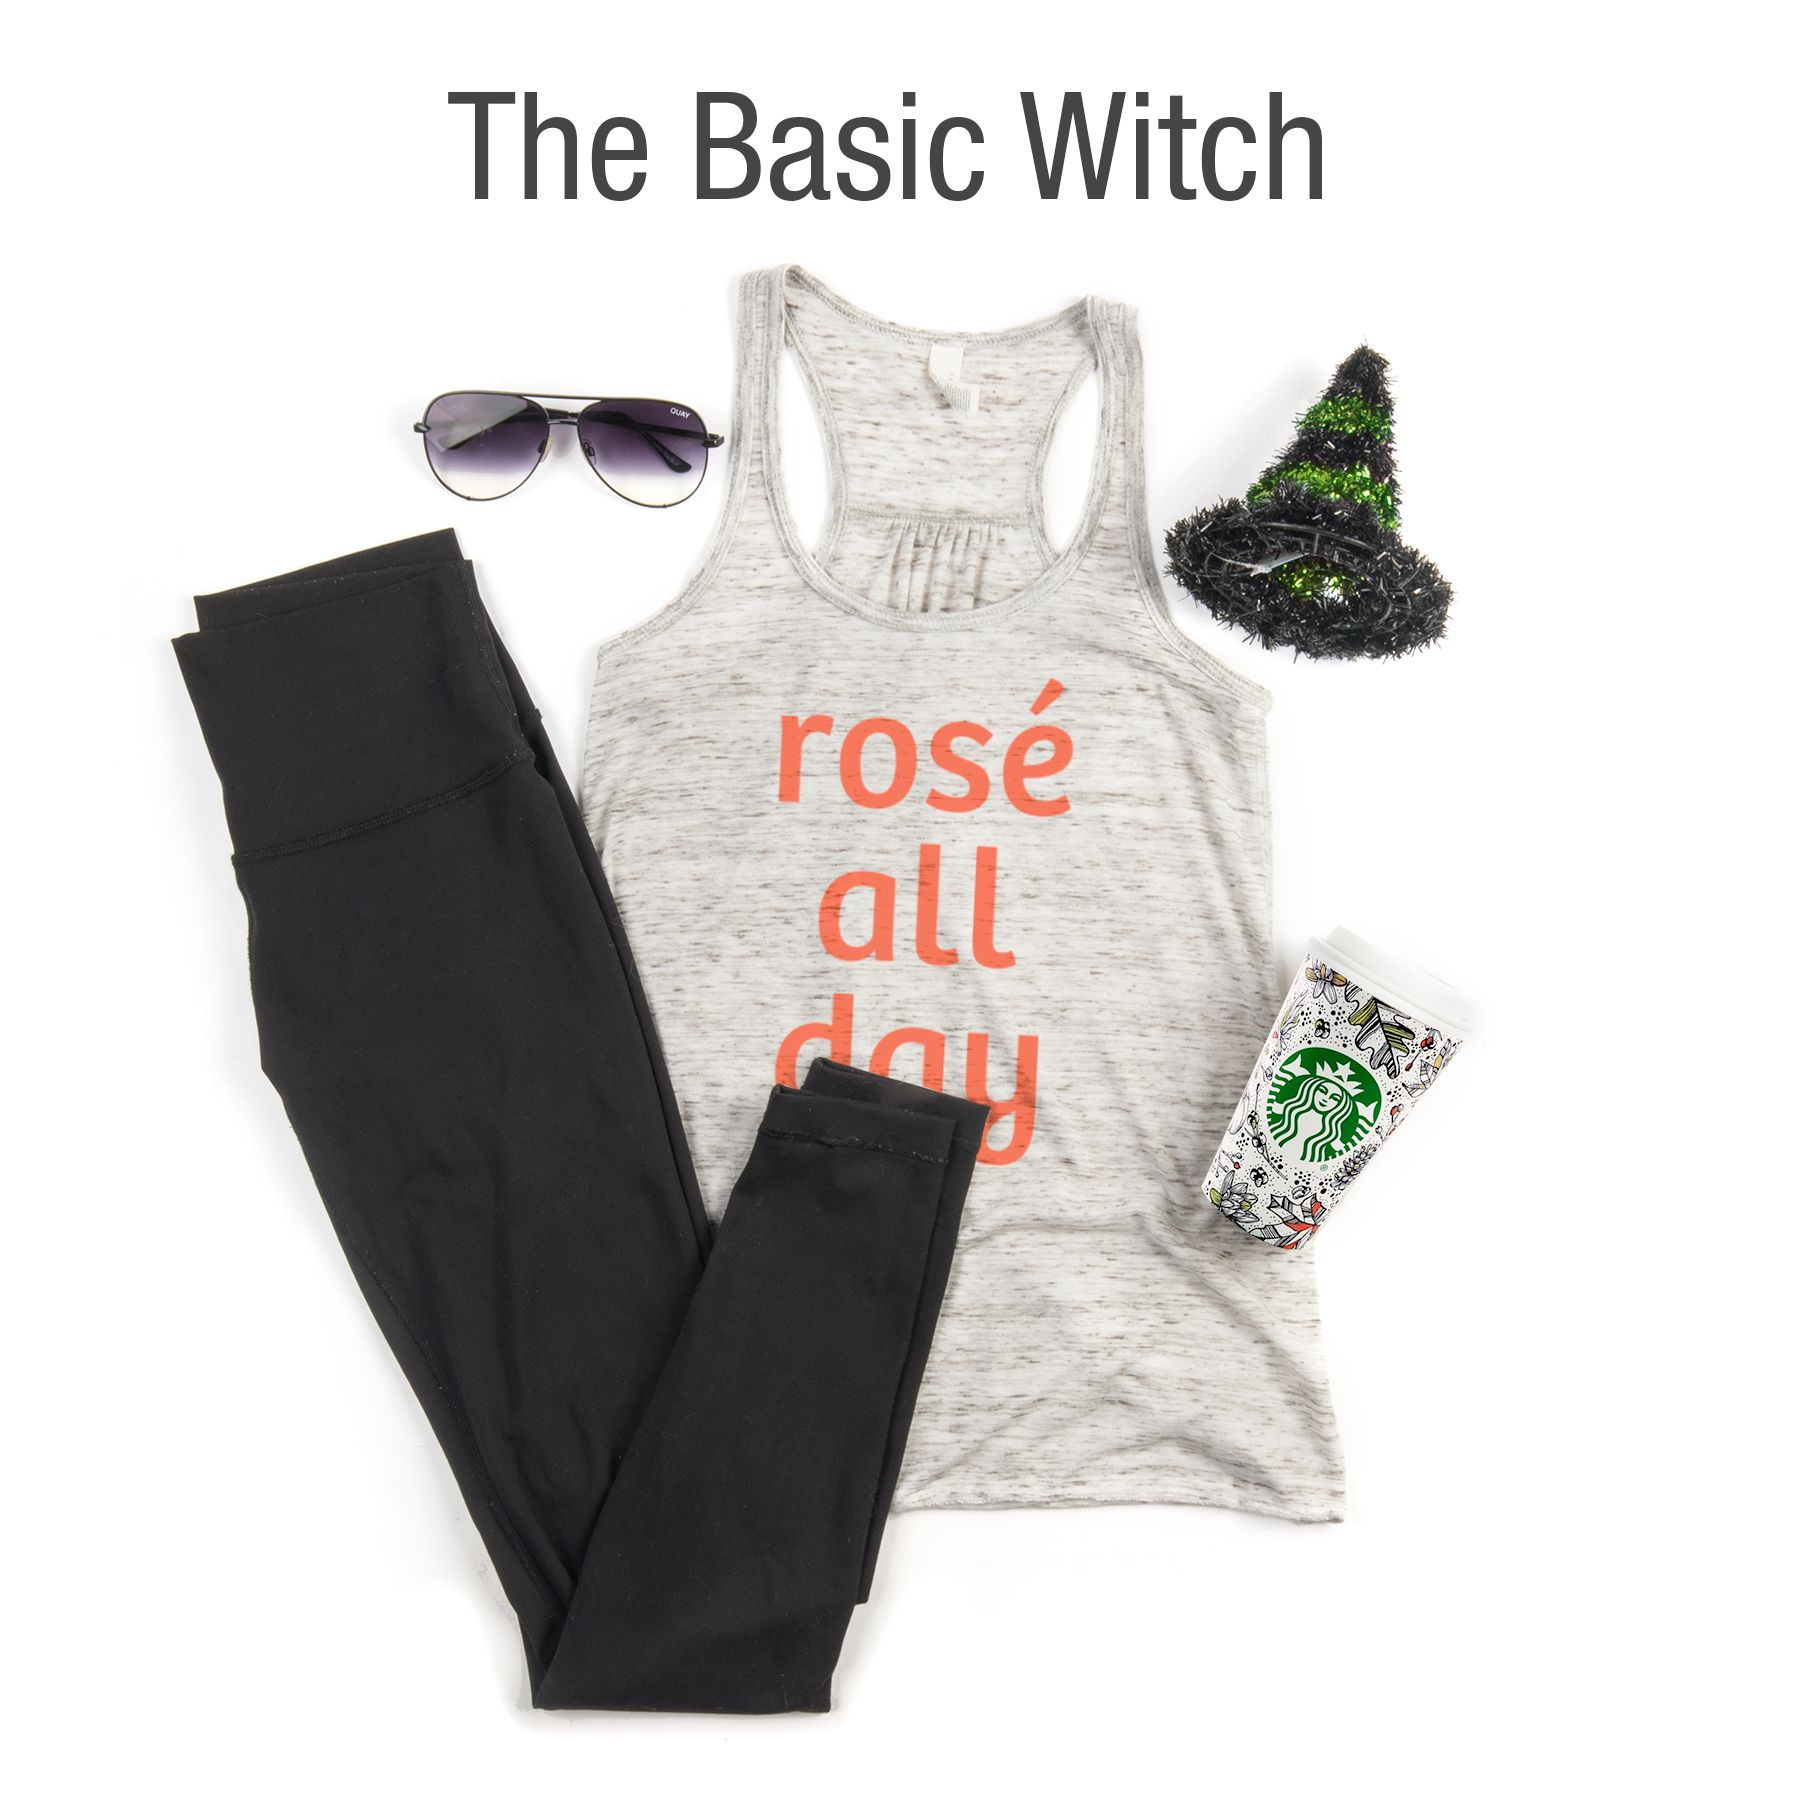 Our Basic Witch example Halloween costume.